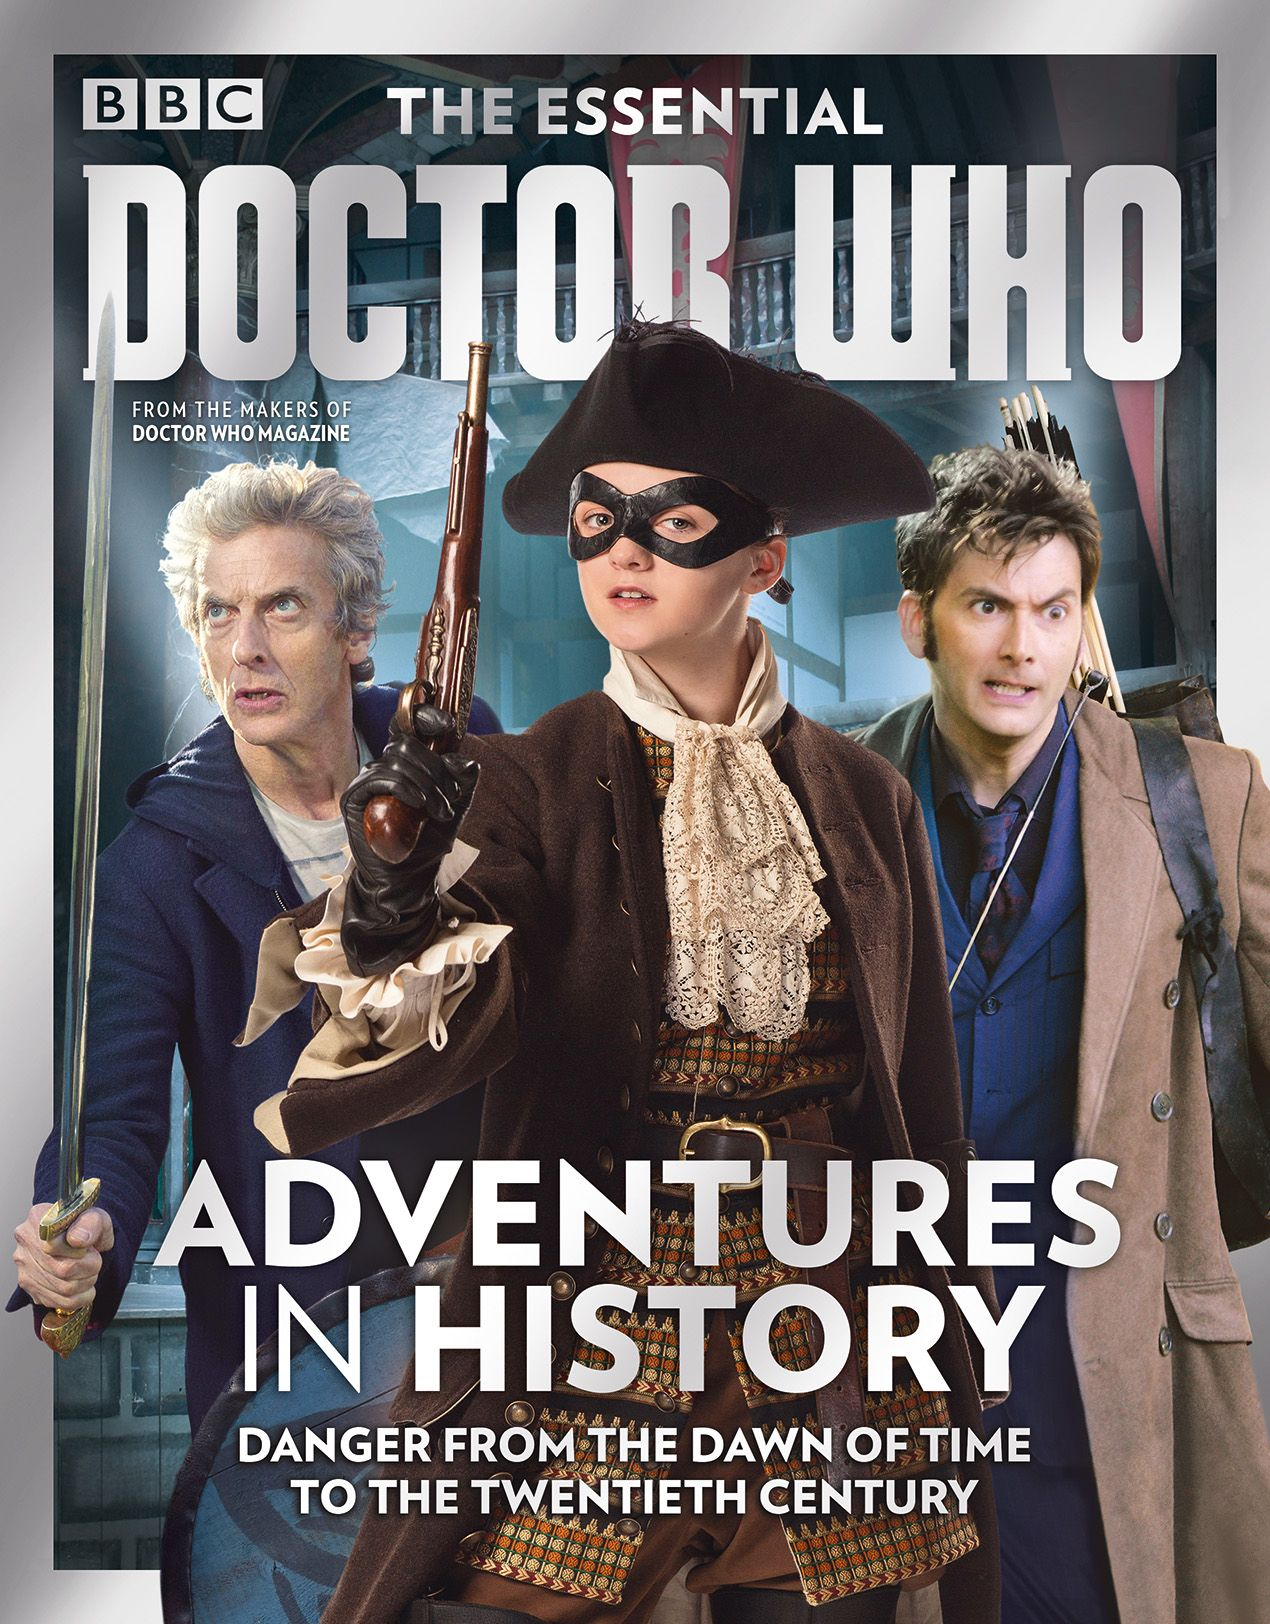 The Essential Doctor Who #8 - Adventures in History (Credit: Doctor Who Magazine)